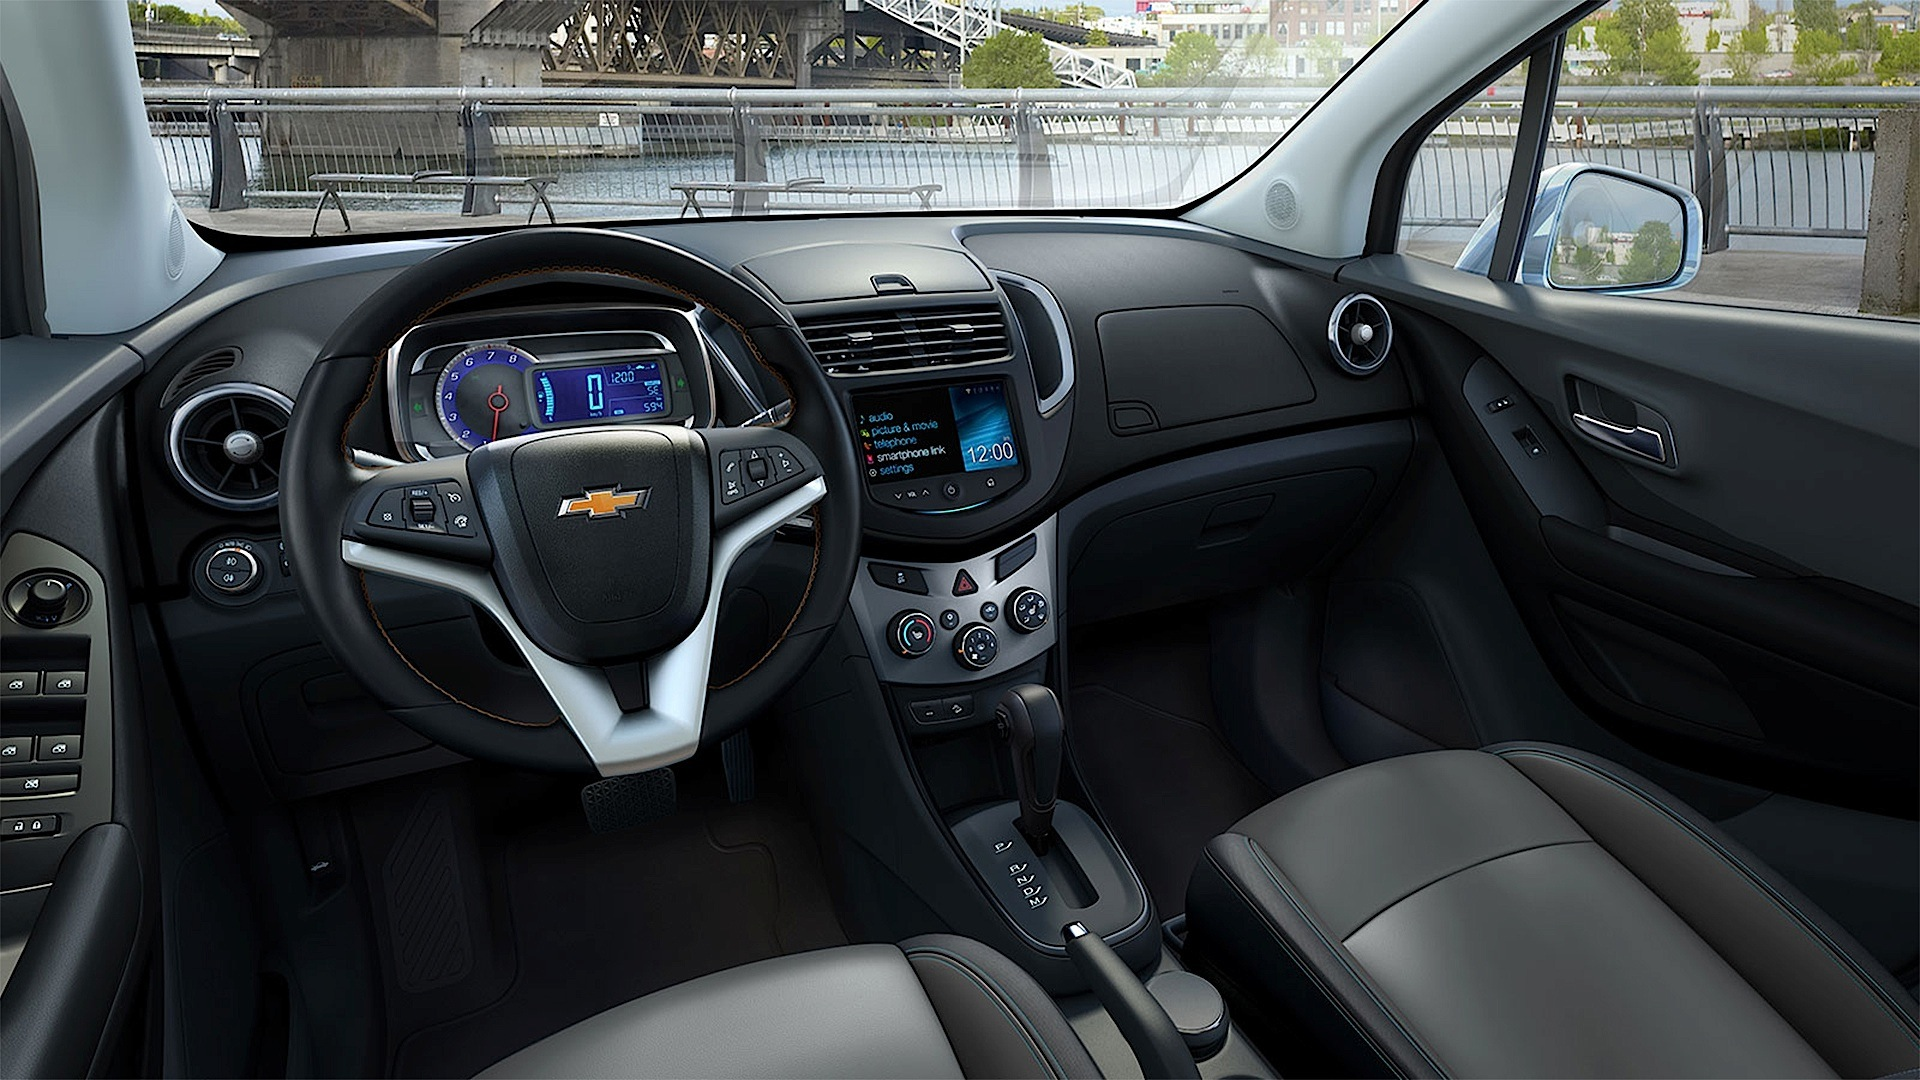 hight resolution of chevrolet tracker pictures 2